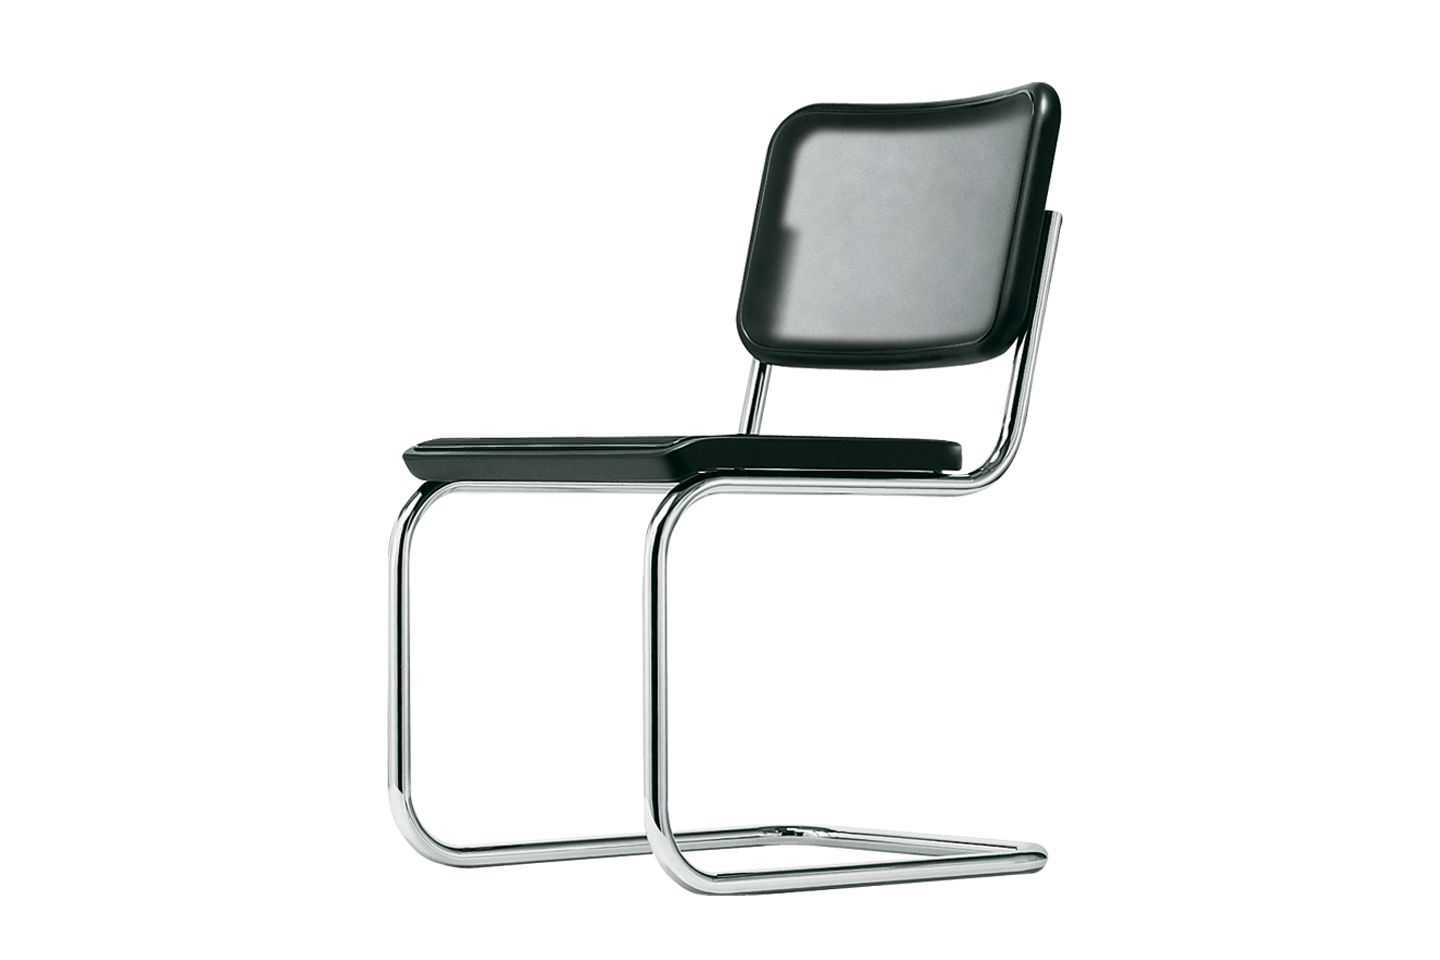 Superieur ... Contemporary Chair / With Armrests / Upholstered / Cantilever ...